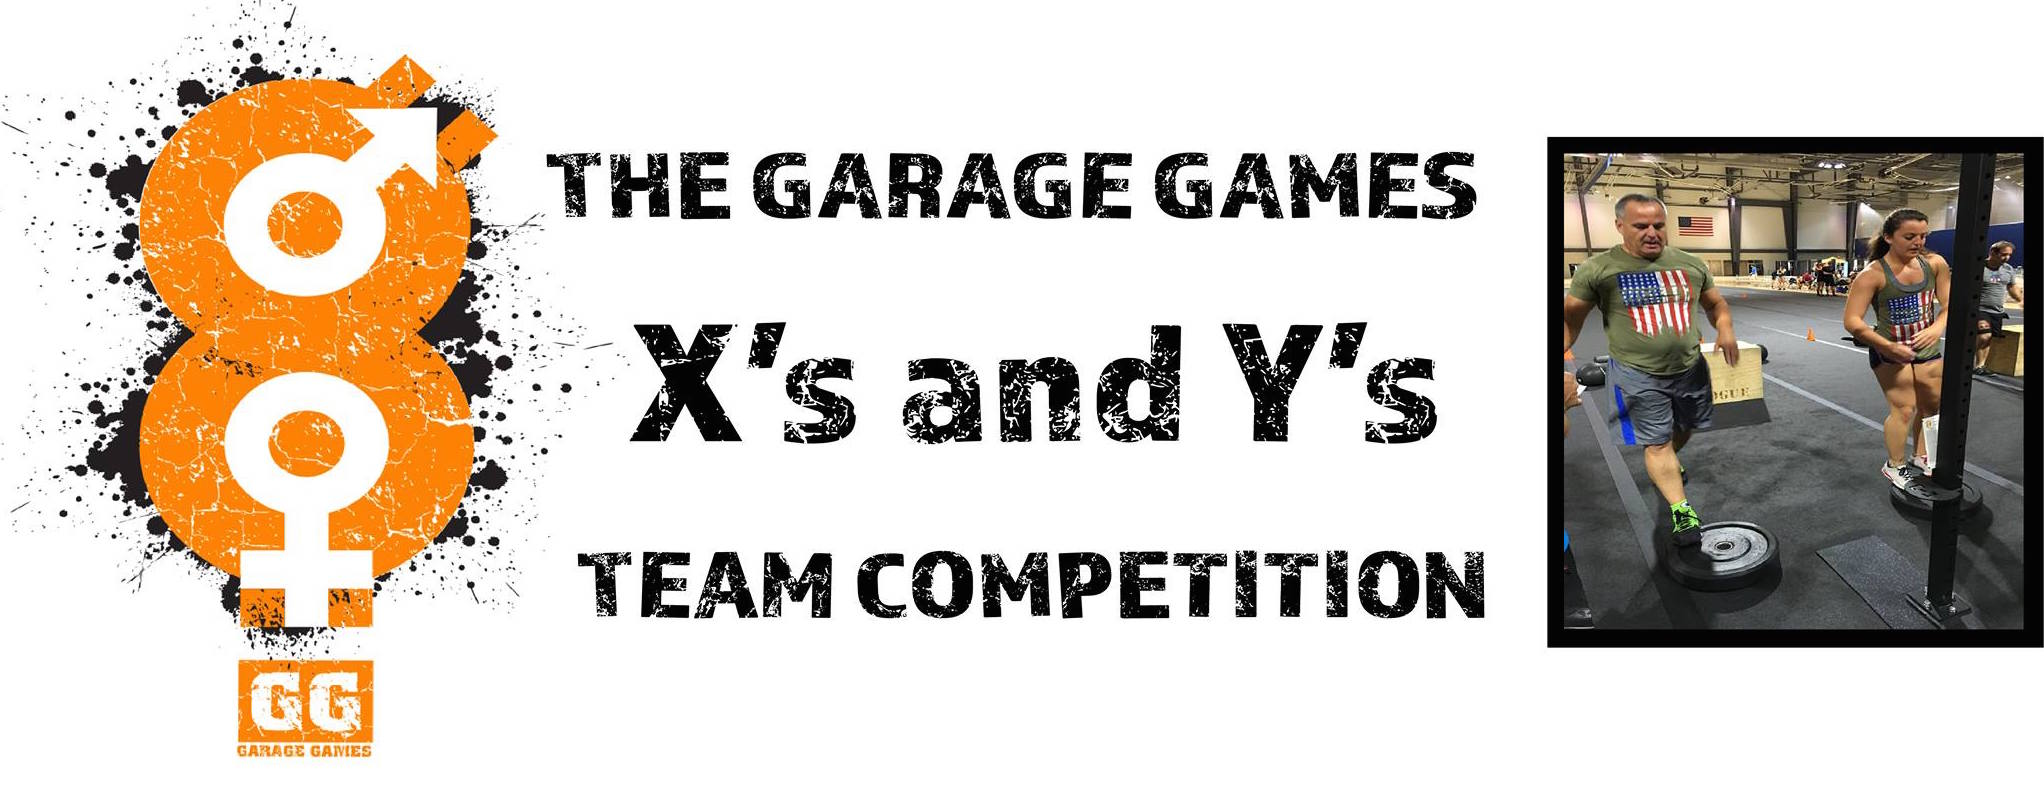 Garage Games Masters Wod Xs Ys Crossfit Cerberus July 20 2019 The Garage Games Series